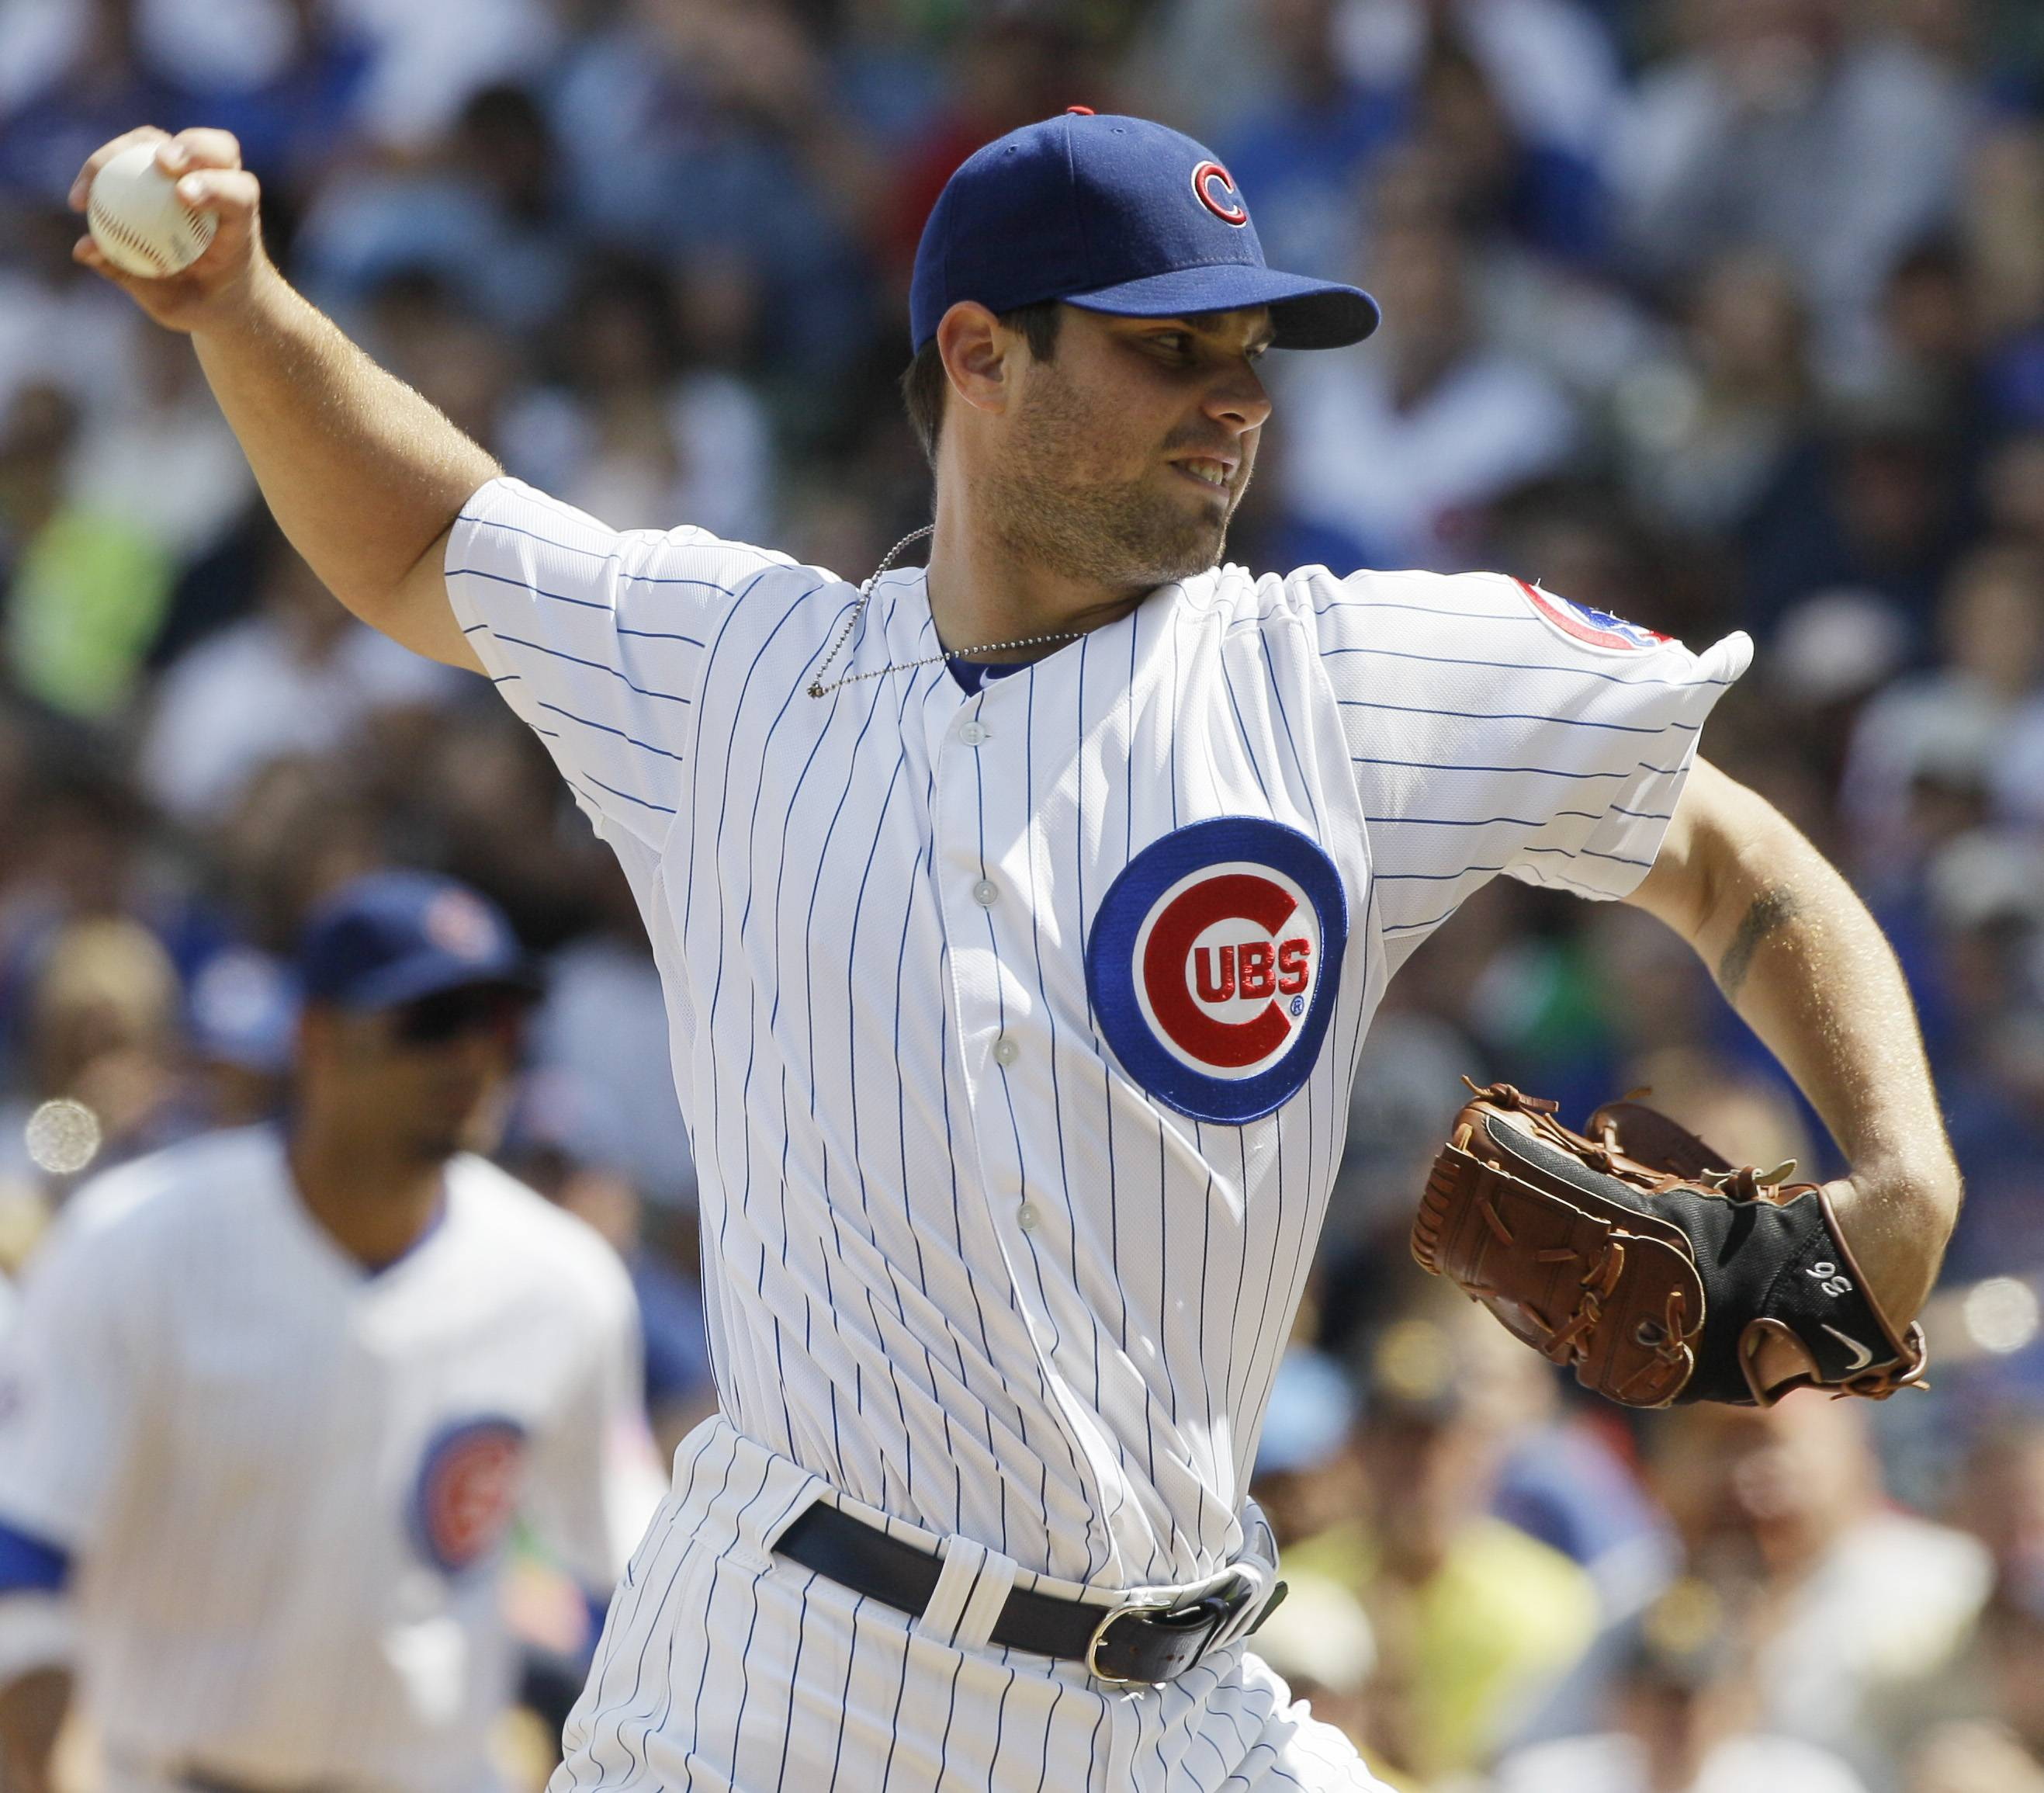 Chicago Cubs starter Randy Wells pitches during the first inning Sunday against the Pittsburgh Pirates in Chicago.